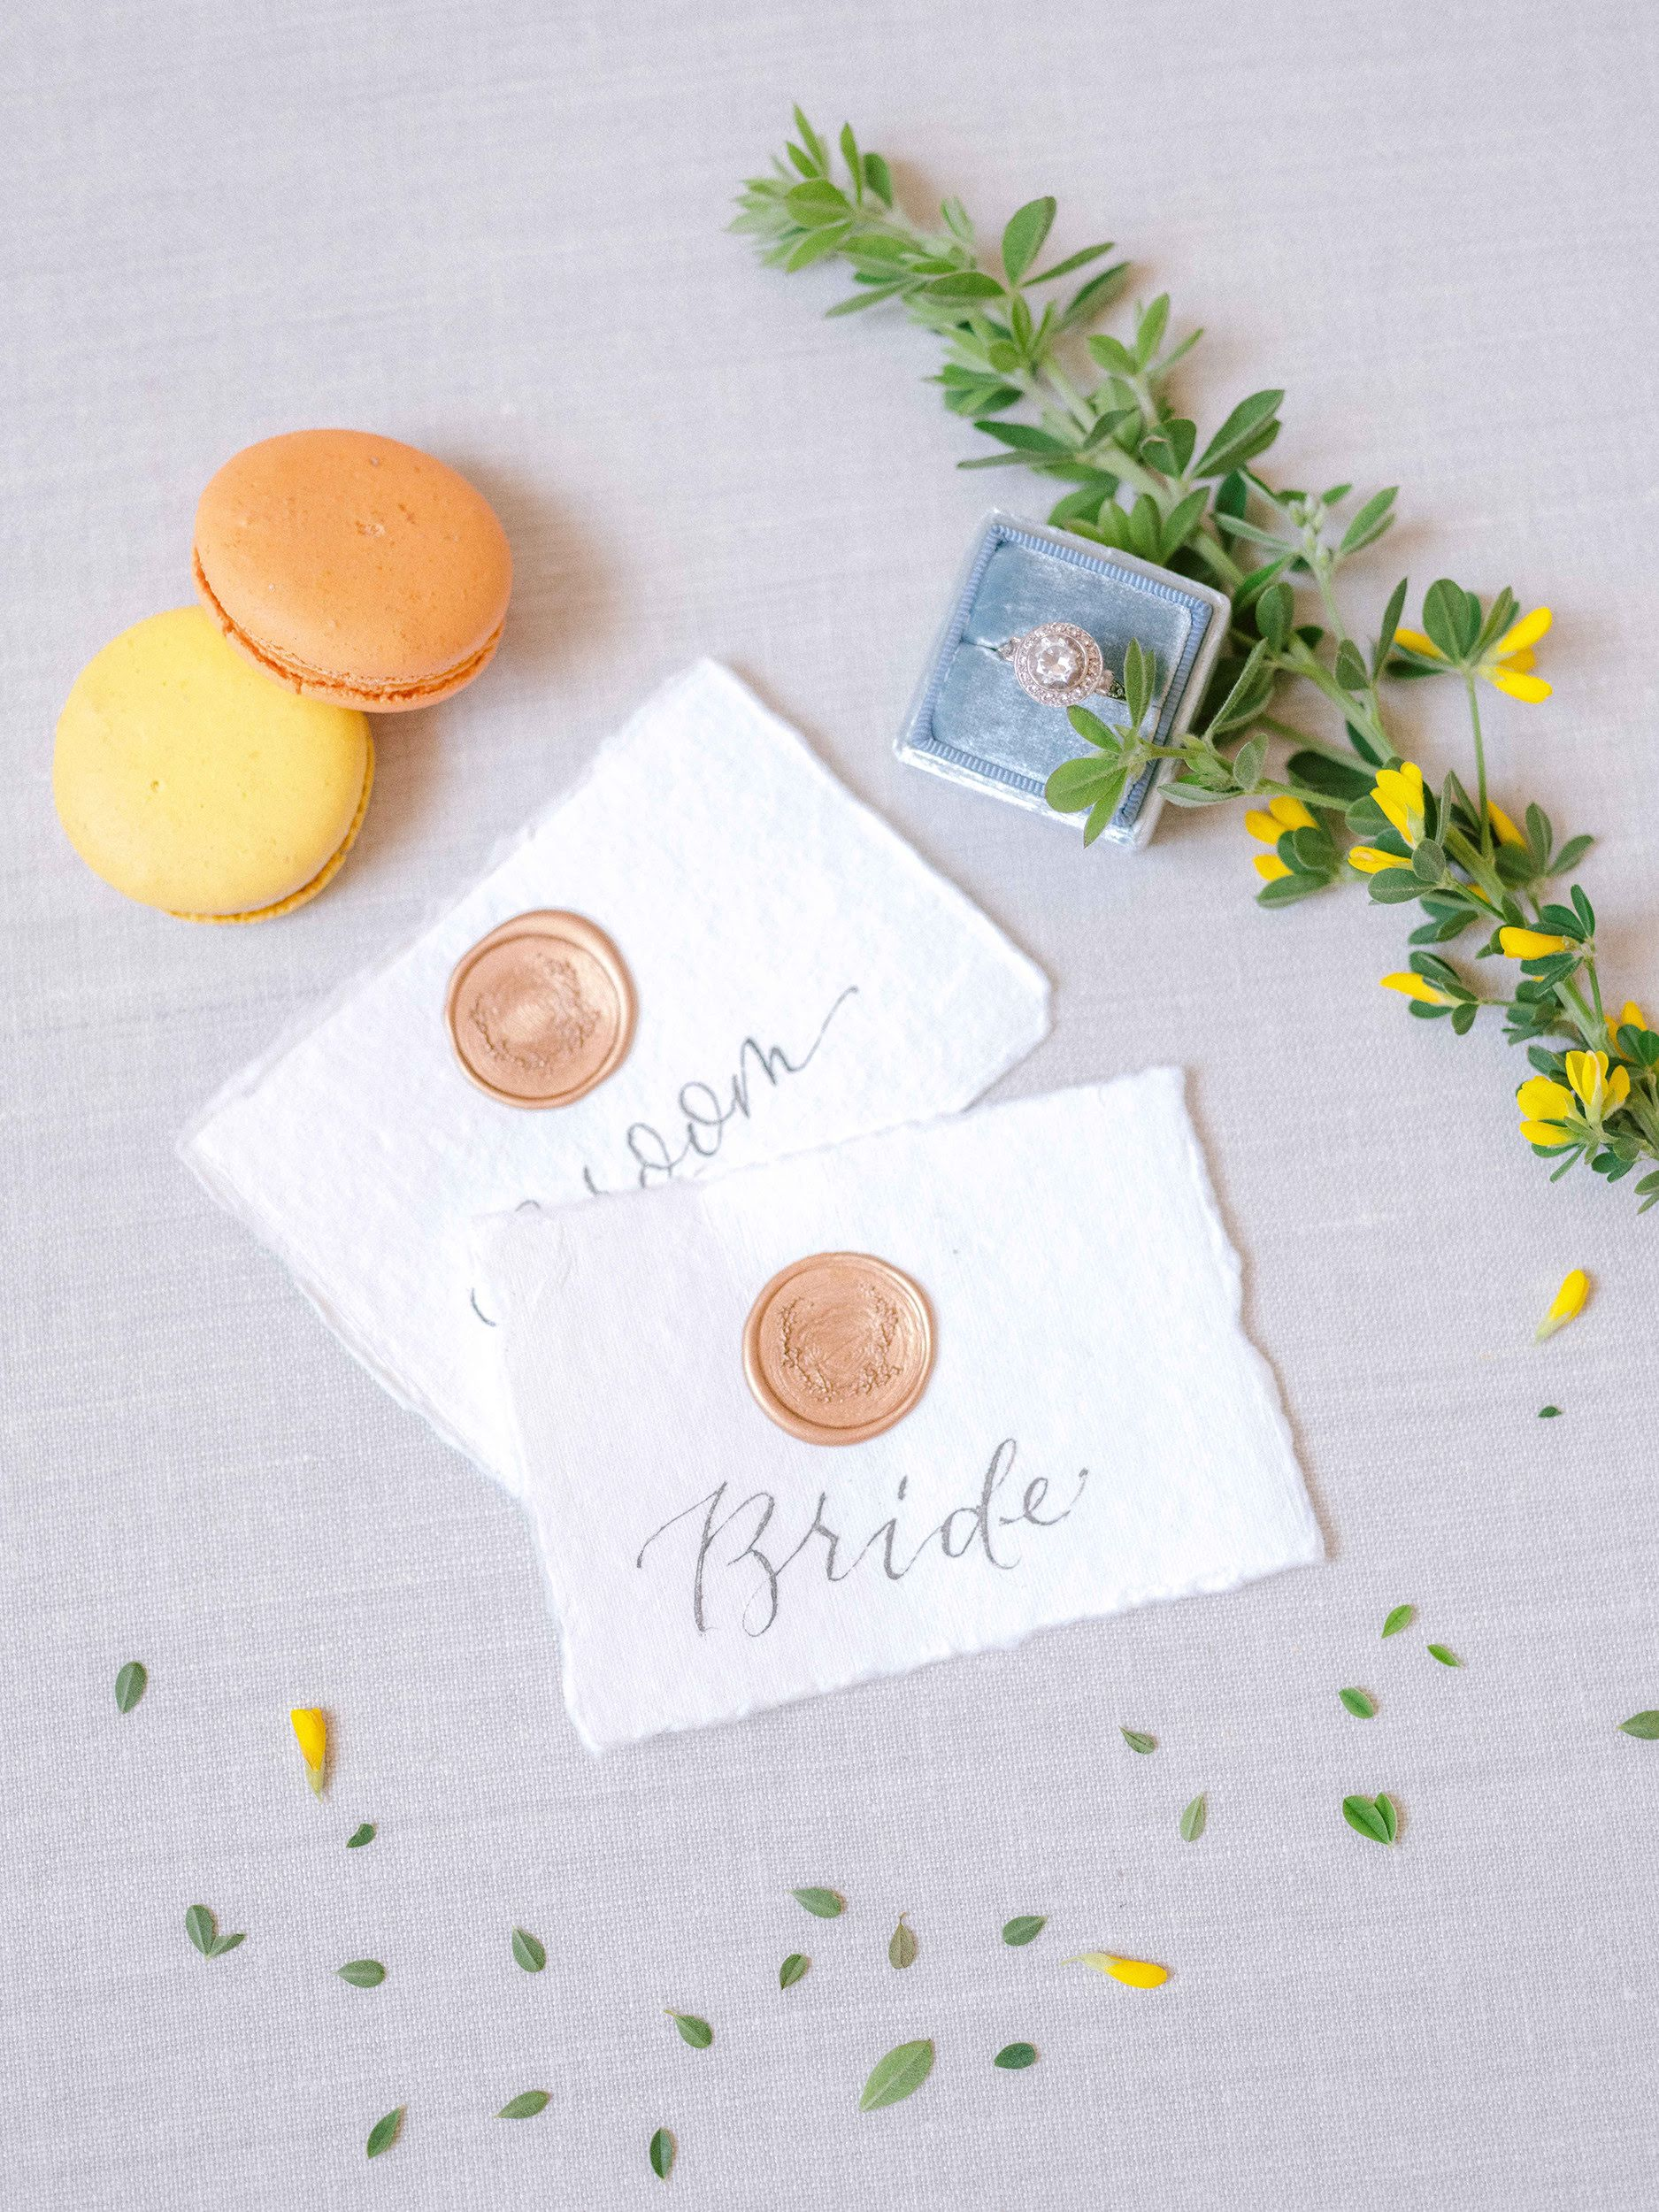 place cards with house wax seal on handmade paper